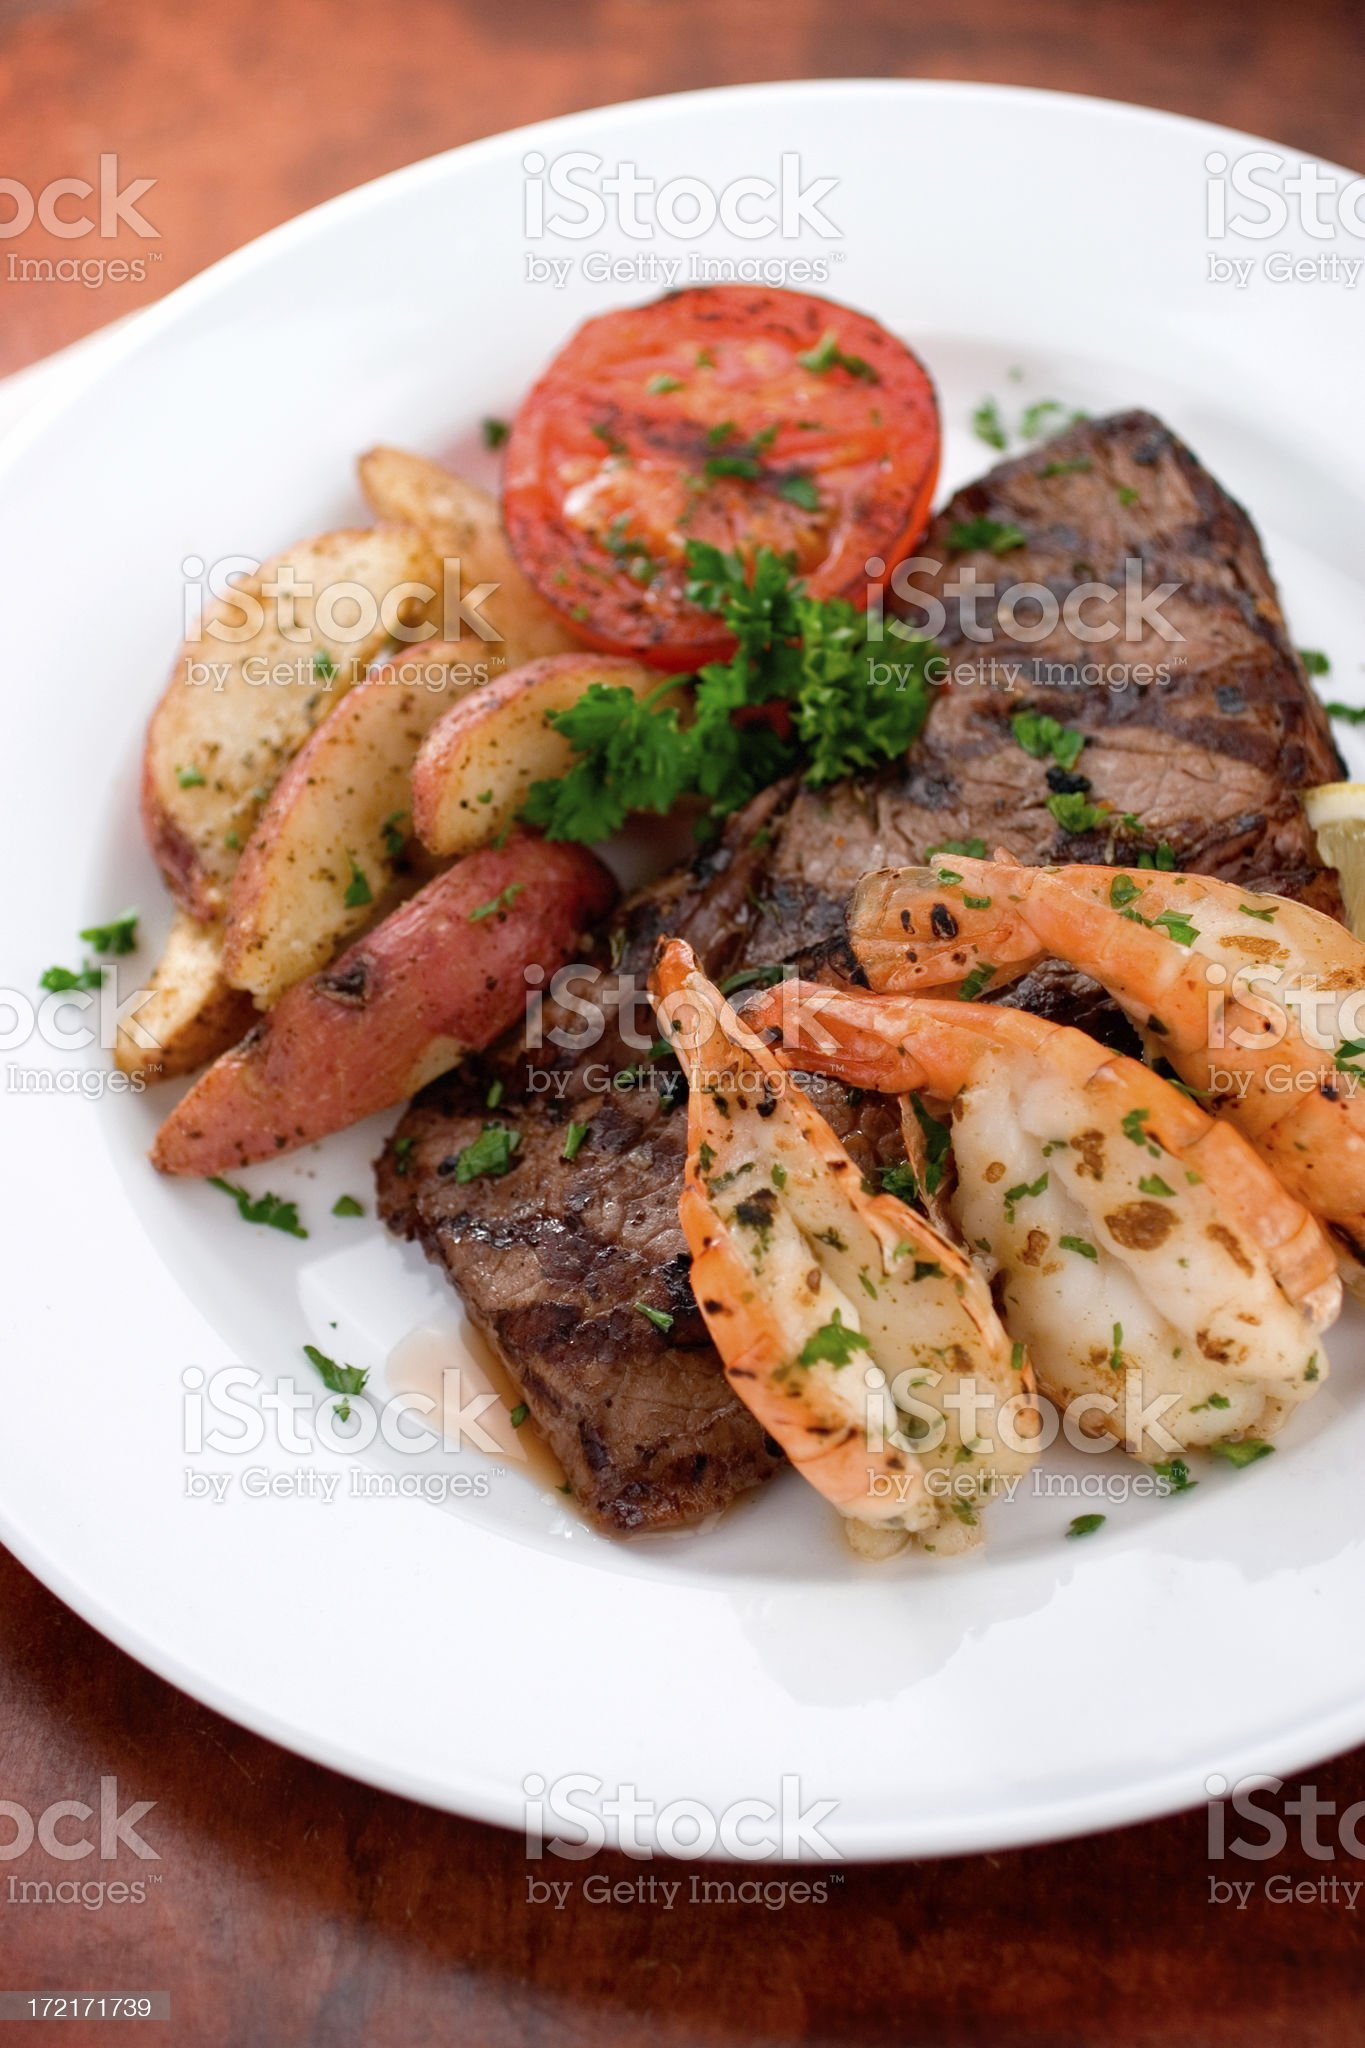 Grilled Steak and Prawns royalty-free stock photo